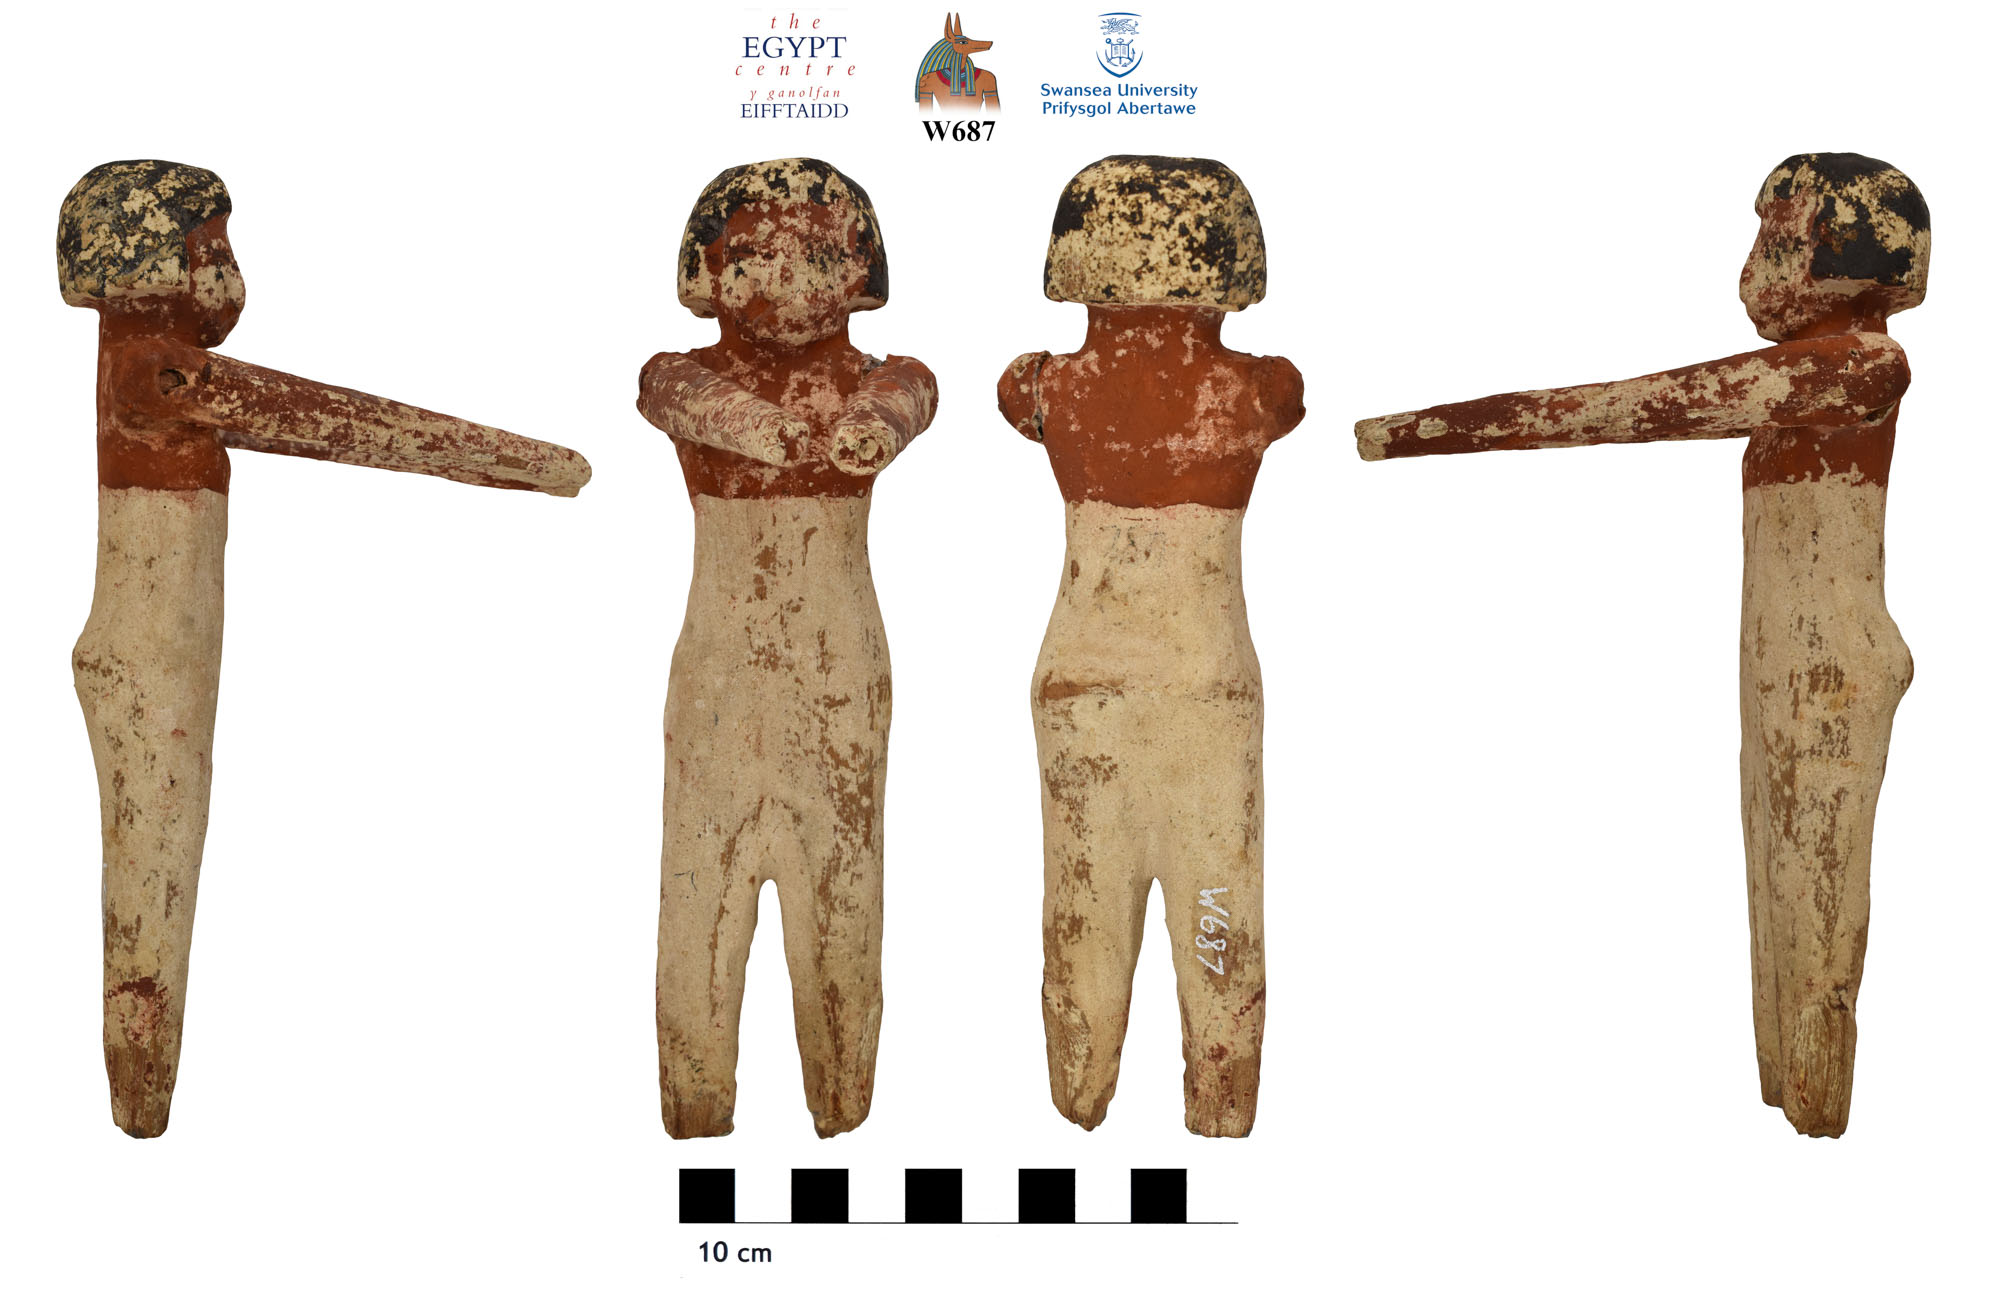 Image for: Wooden funerary figure from Beni Hasan